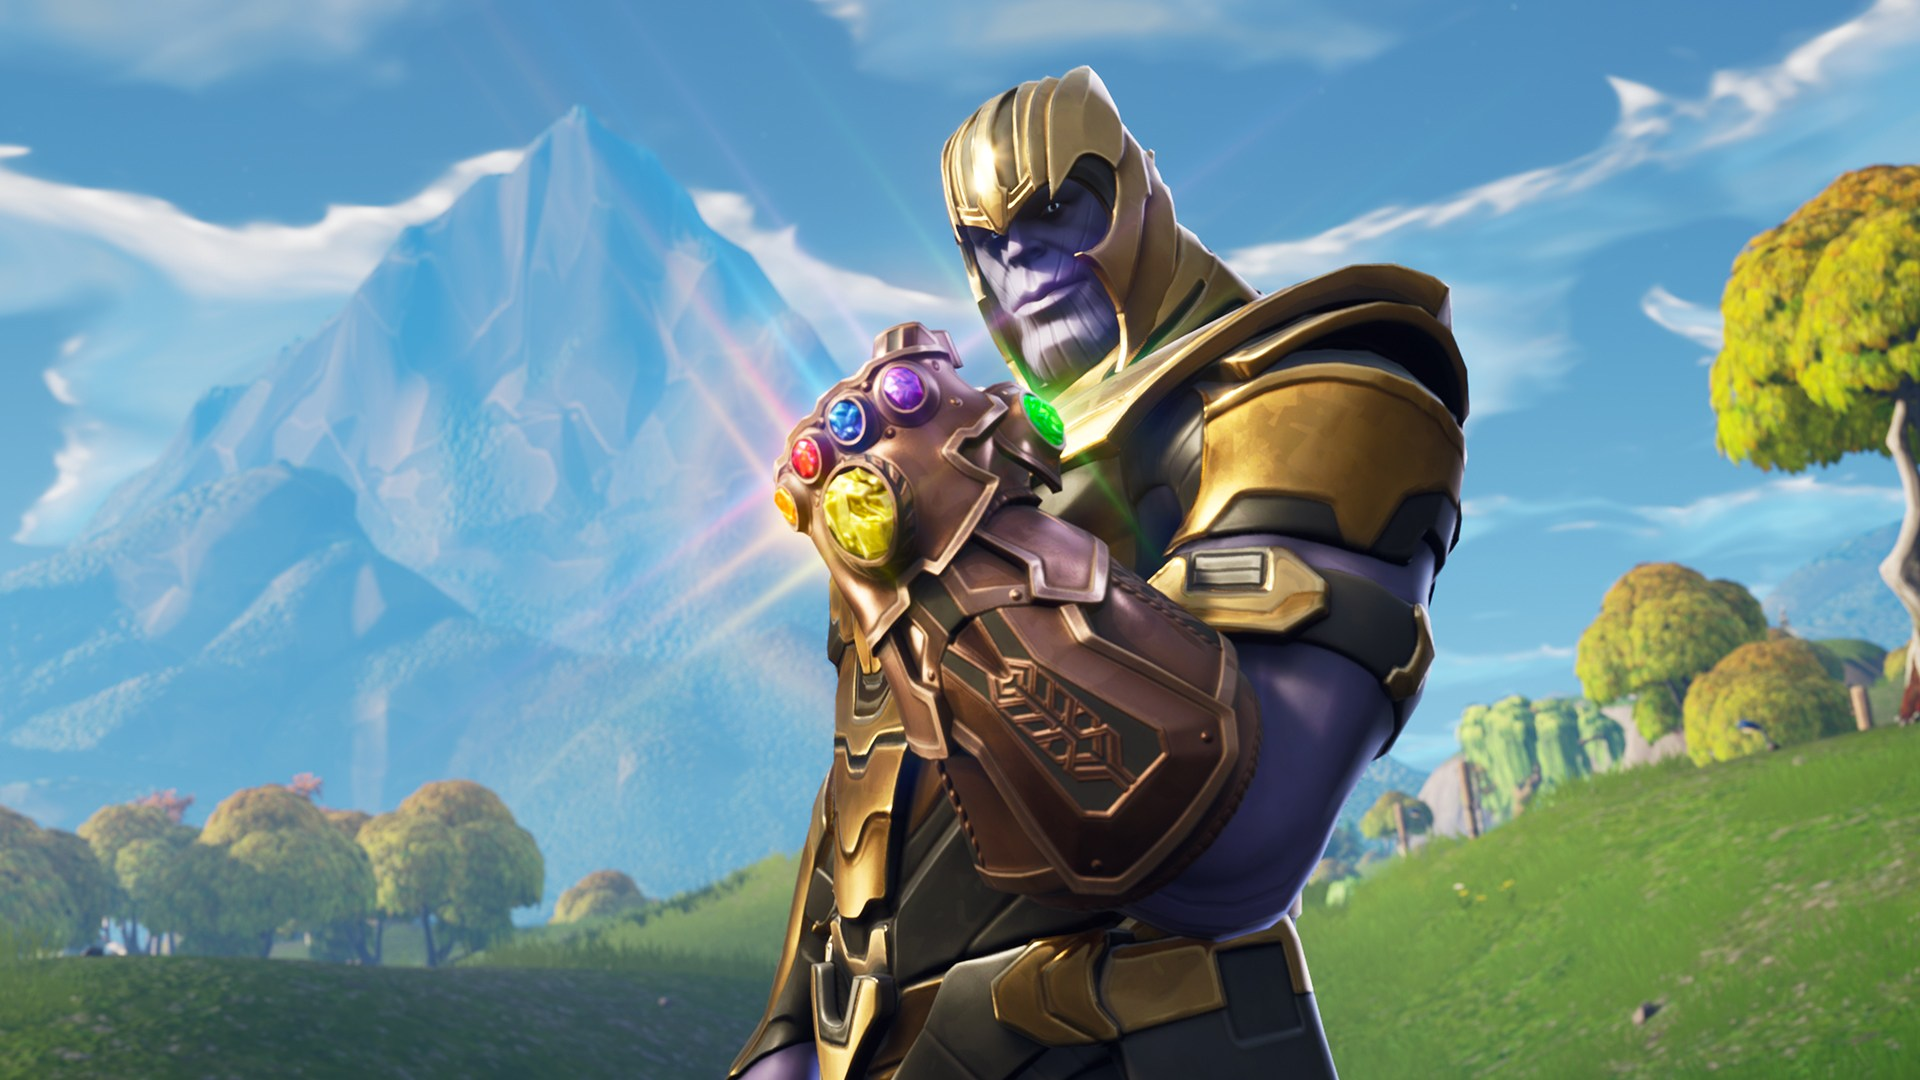 Powder Fortnite Wallpapers Posted By Ryan Anderson